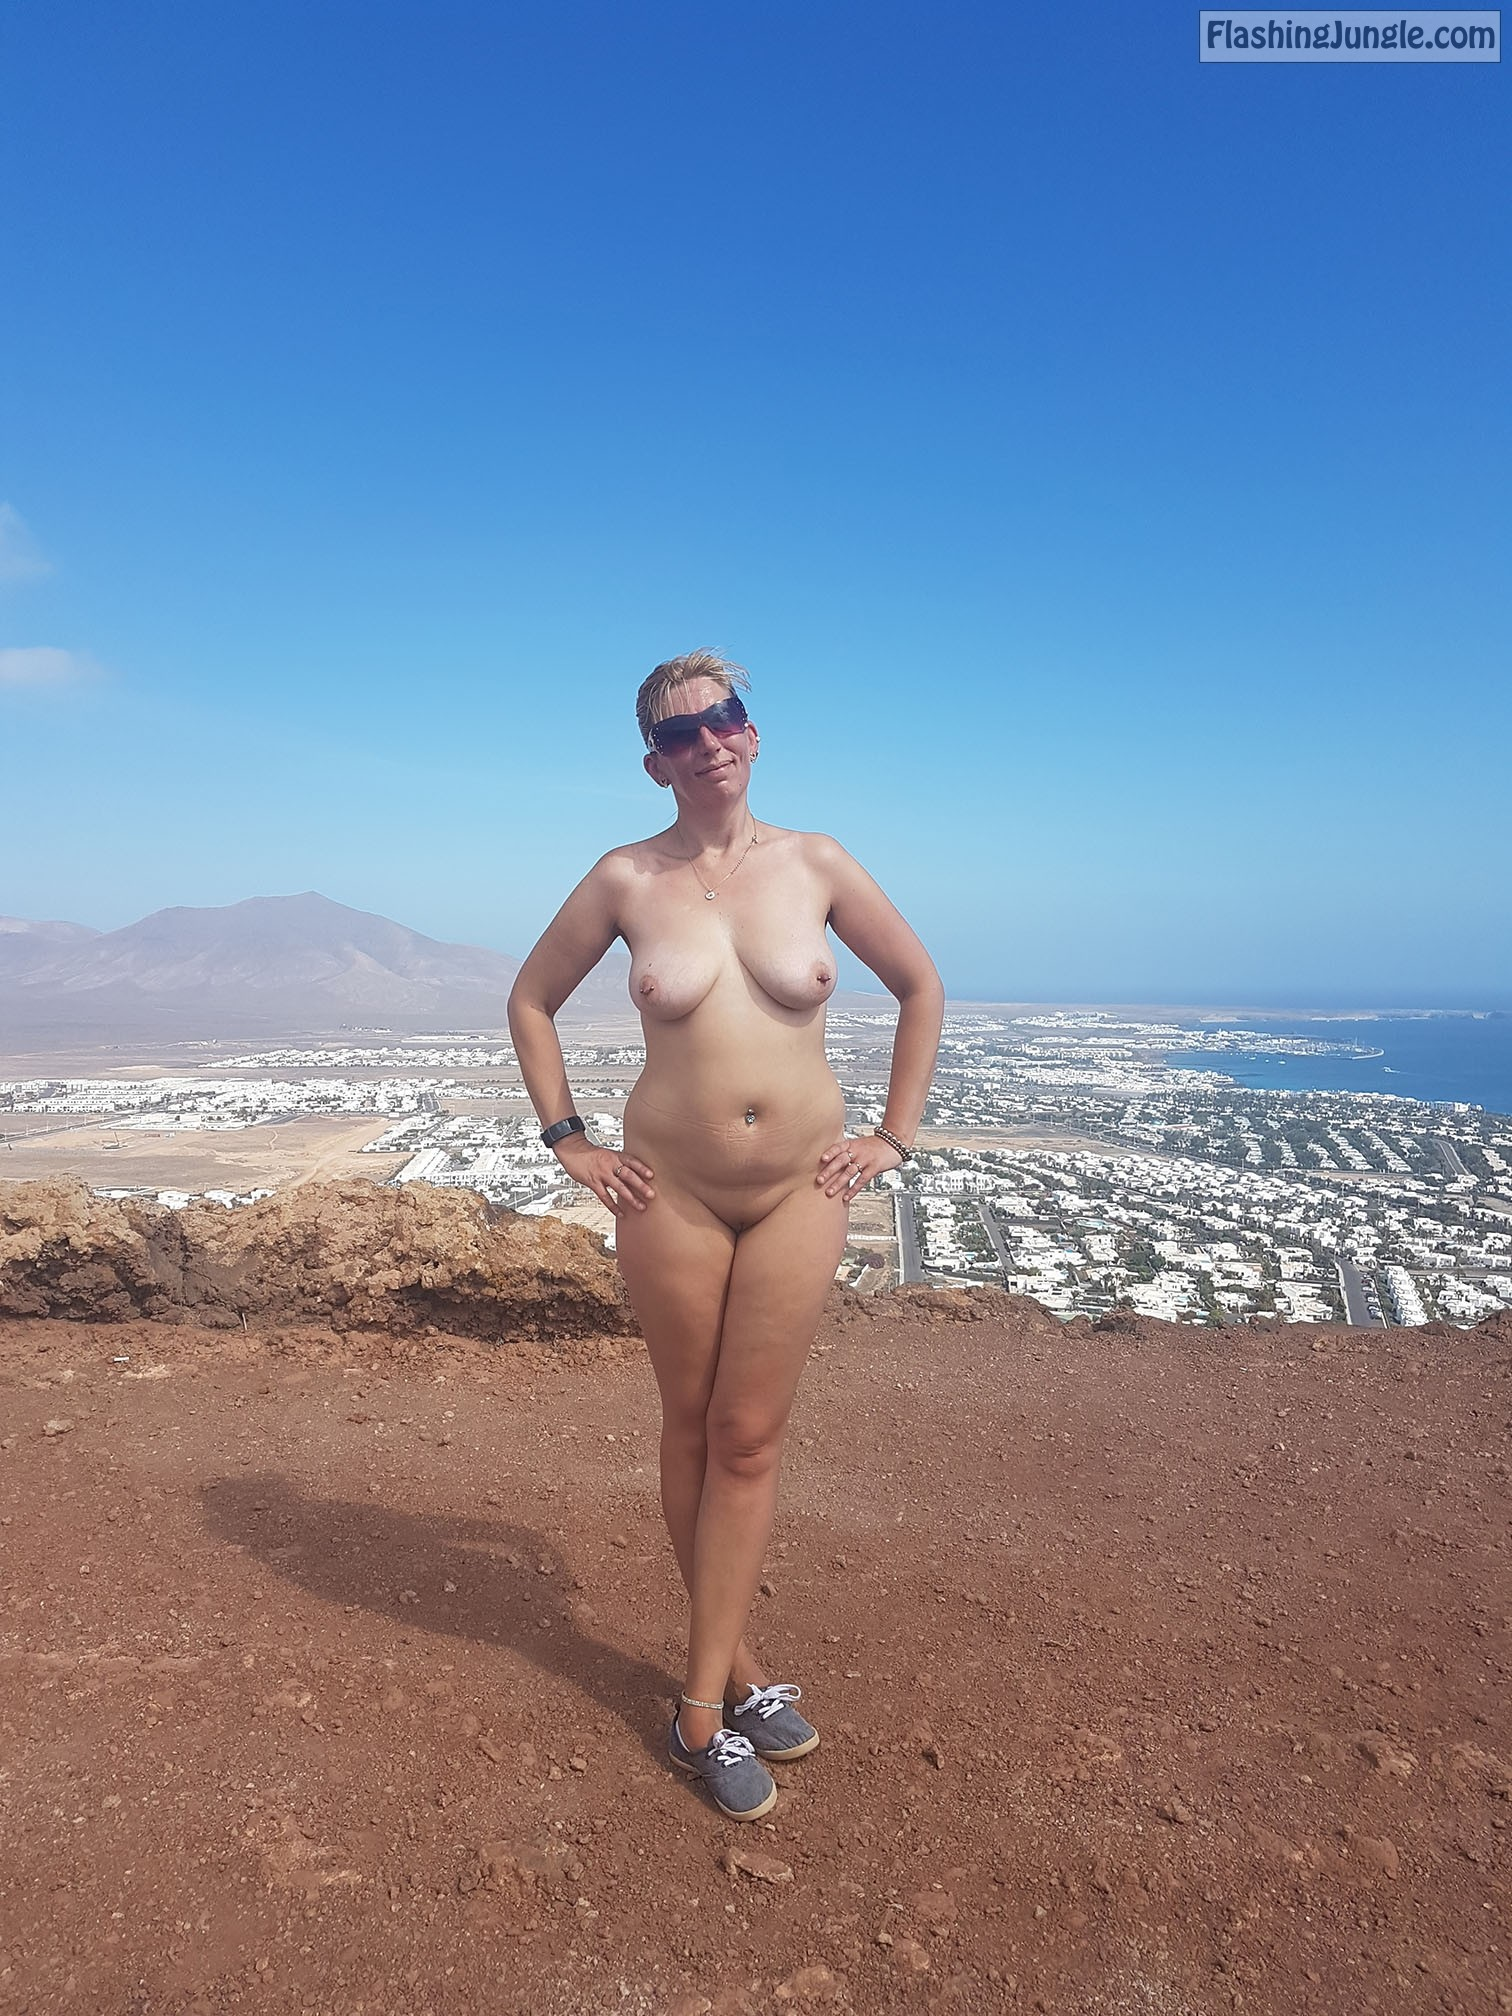 Curvy body fully naked - panorama view